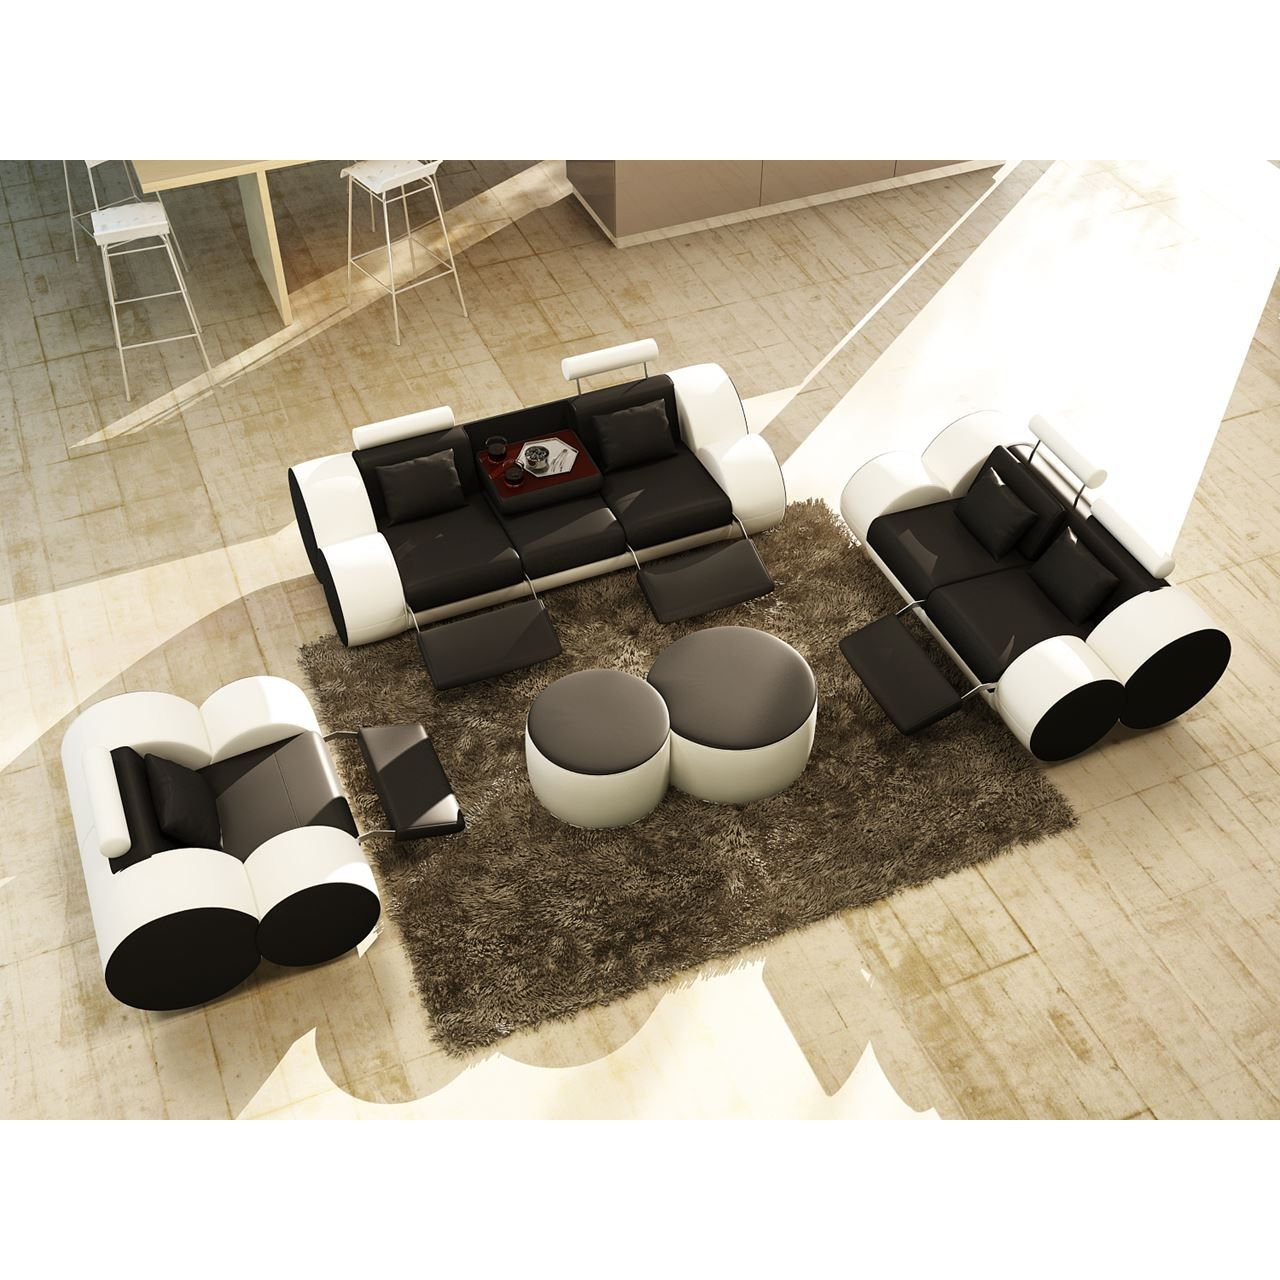 deco in paris ensemble canape design 3 2 1 place en cuir noir et blanc roma roma 3 2 1 noir blanc. Black Bedroom Furniture Sets. Home Design Ideas